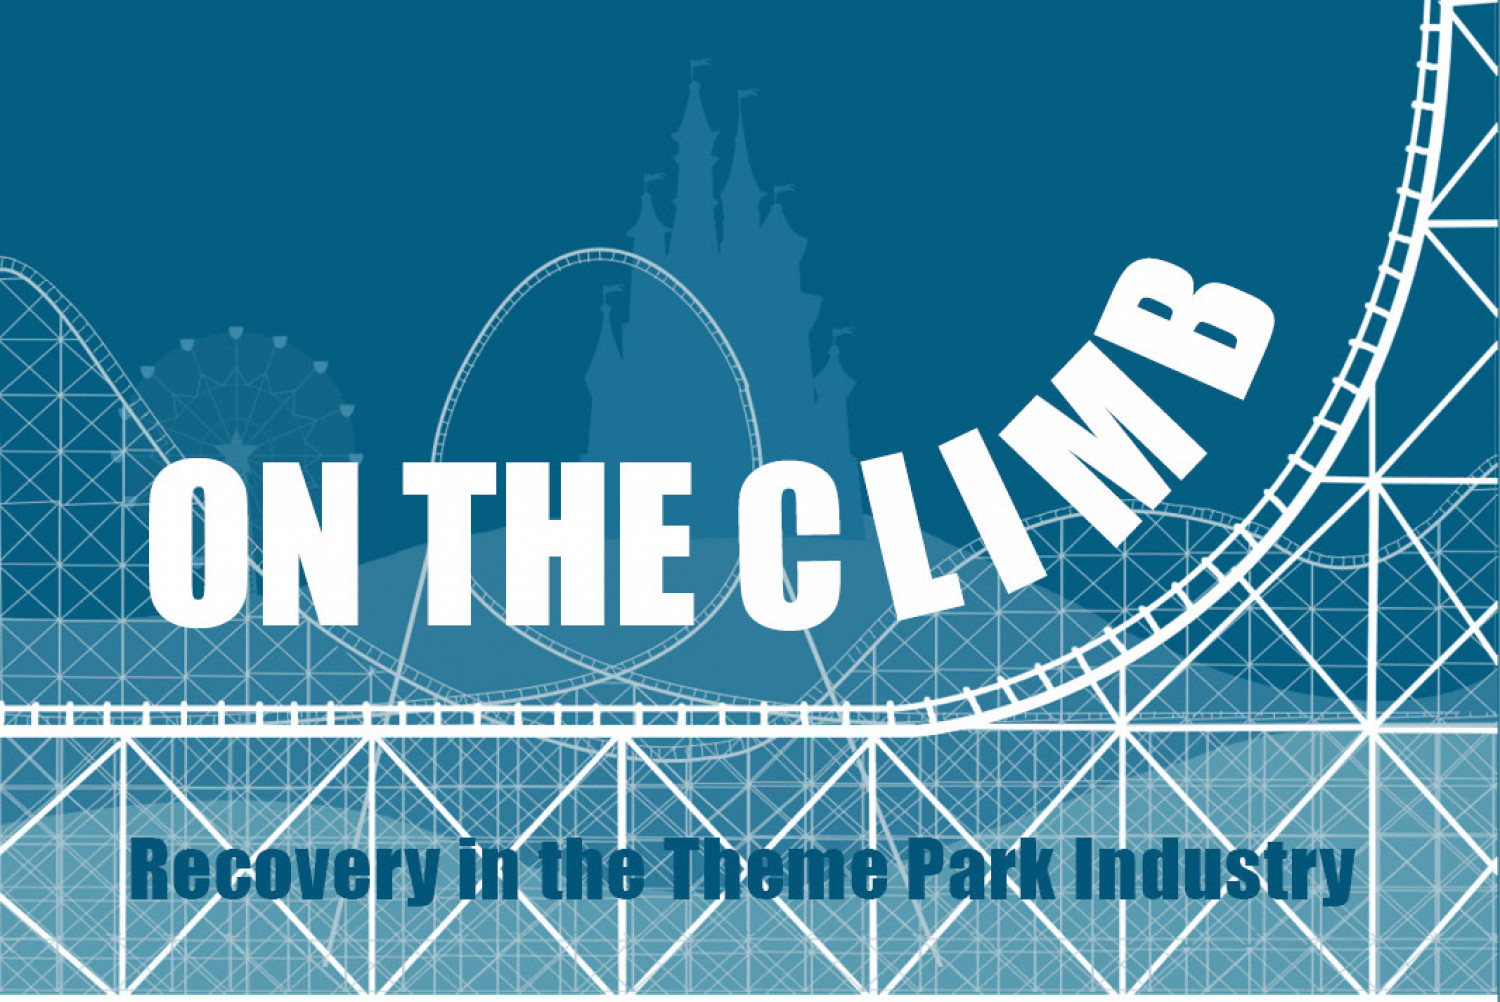 On the Climb: Recovery in the Theme Park Industry Infographic